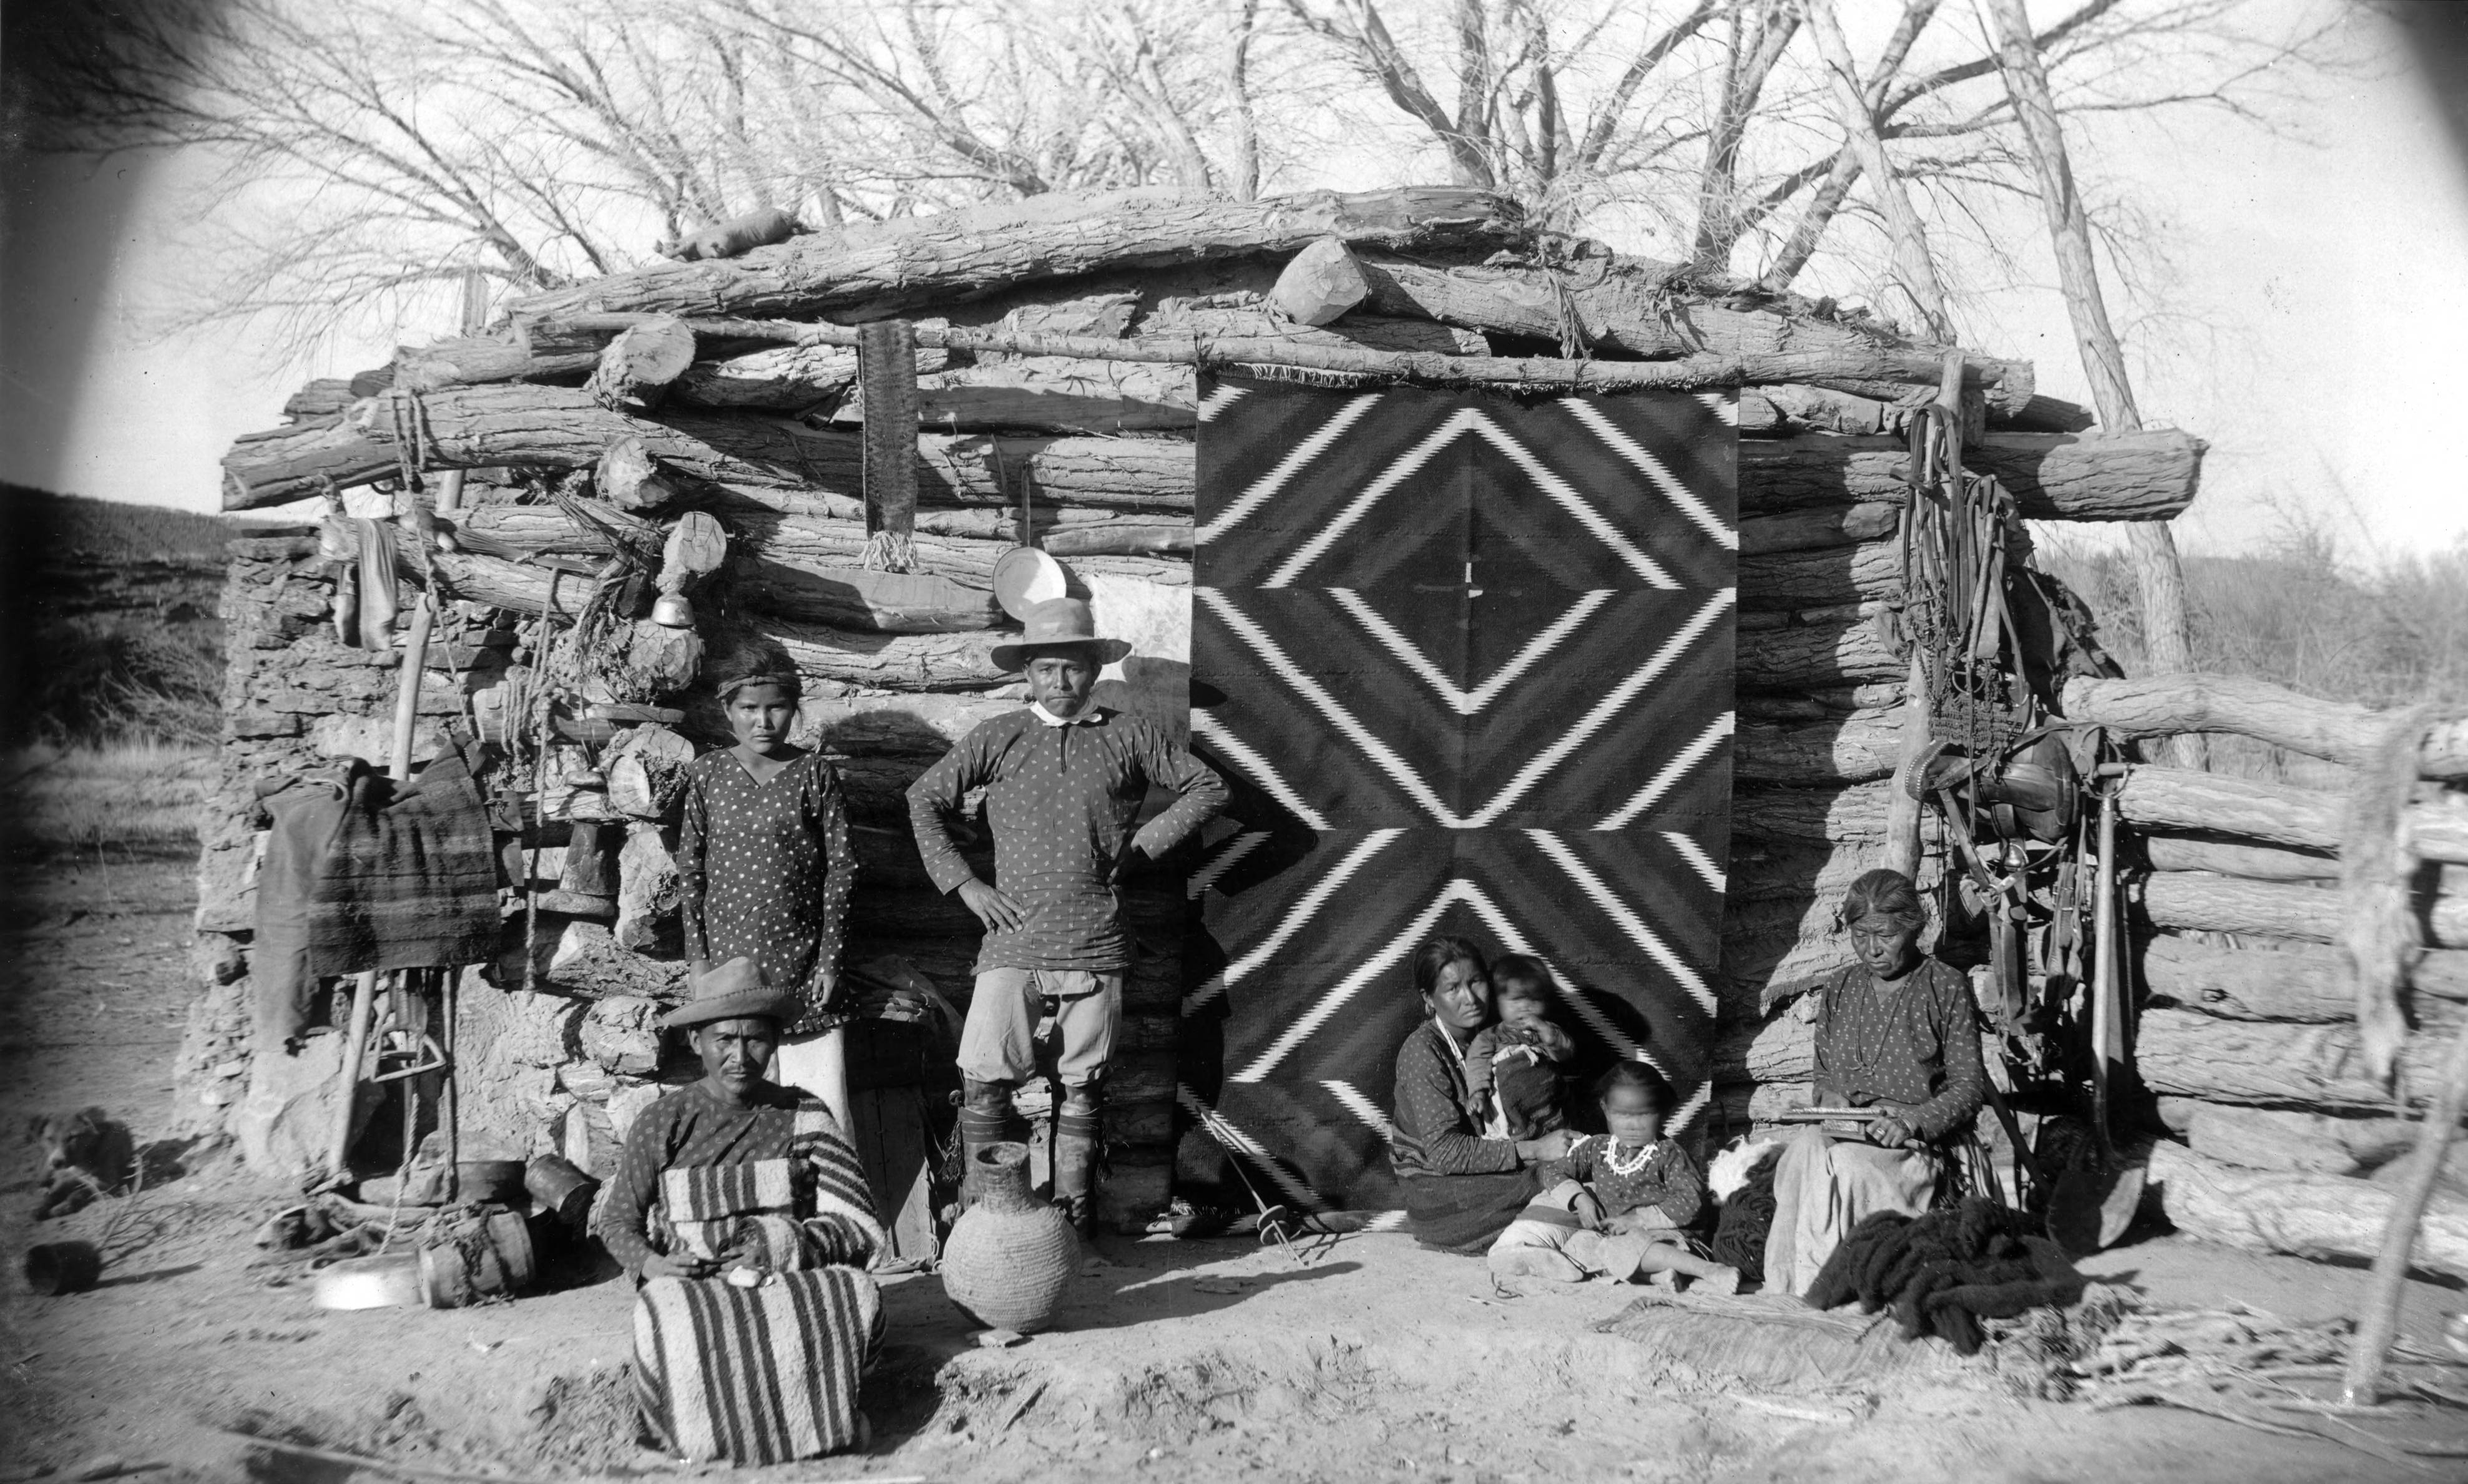 Navajo winter hogan with Navajo Blanket over doorway circa 1880